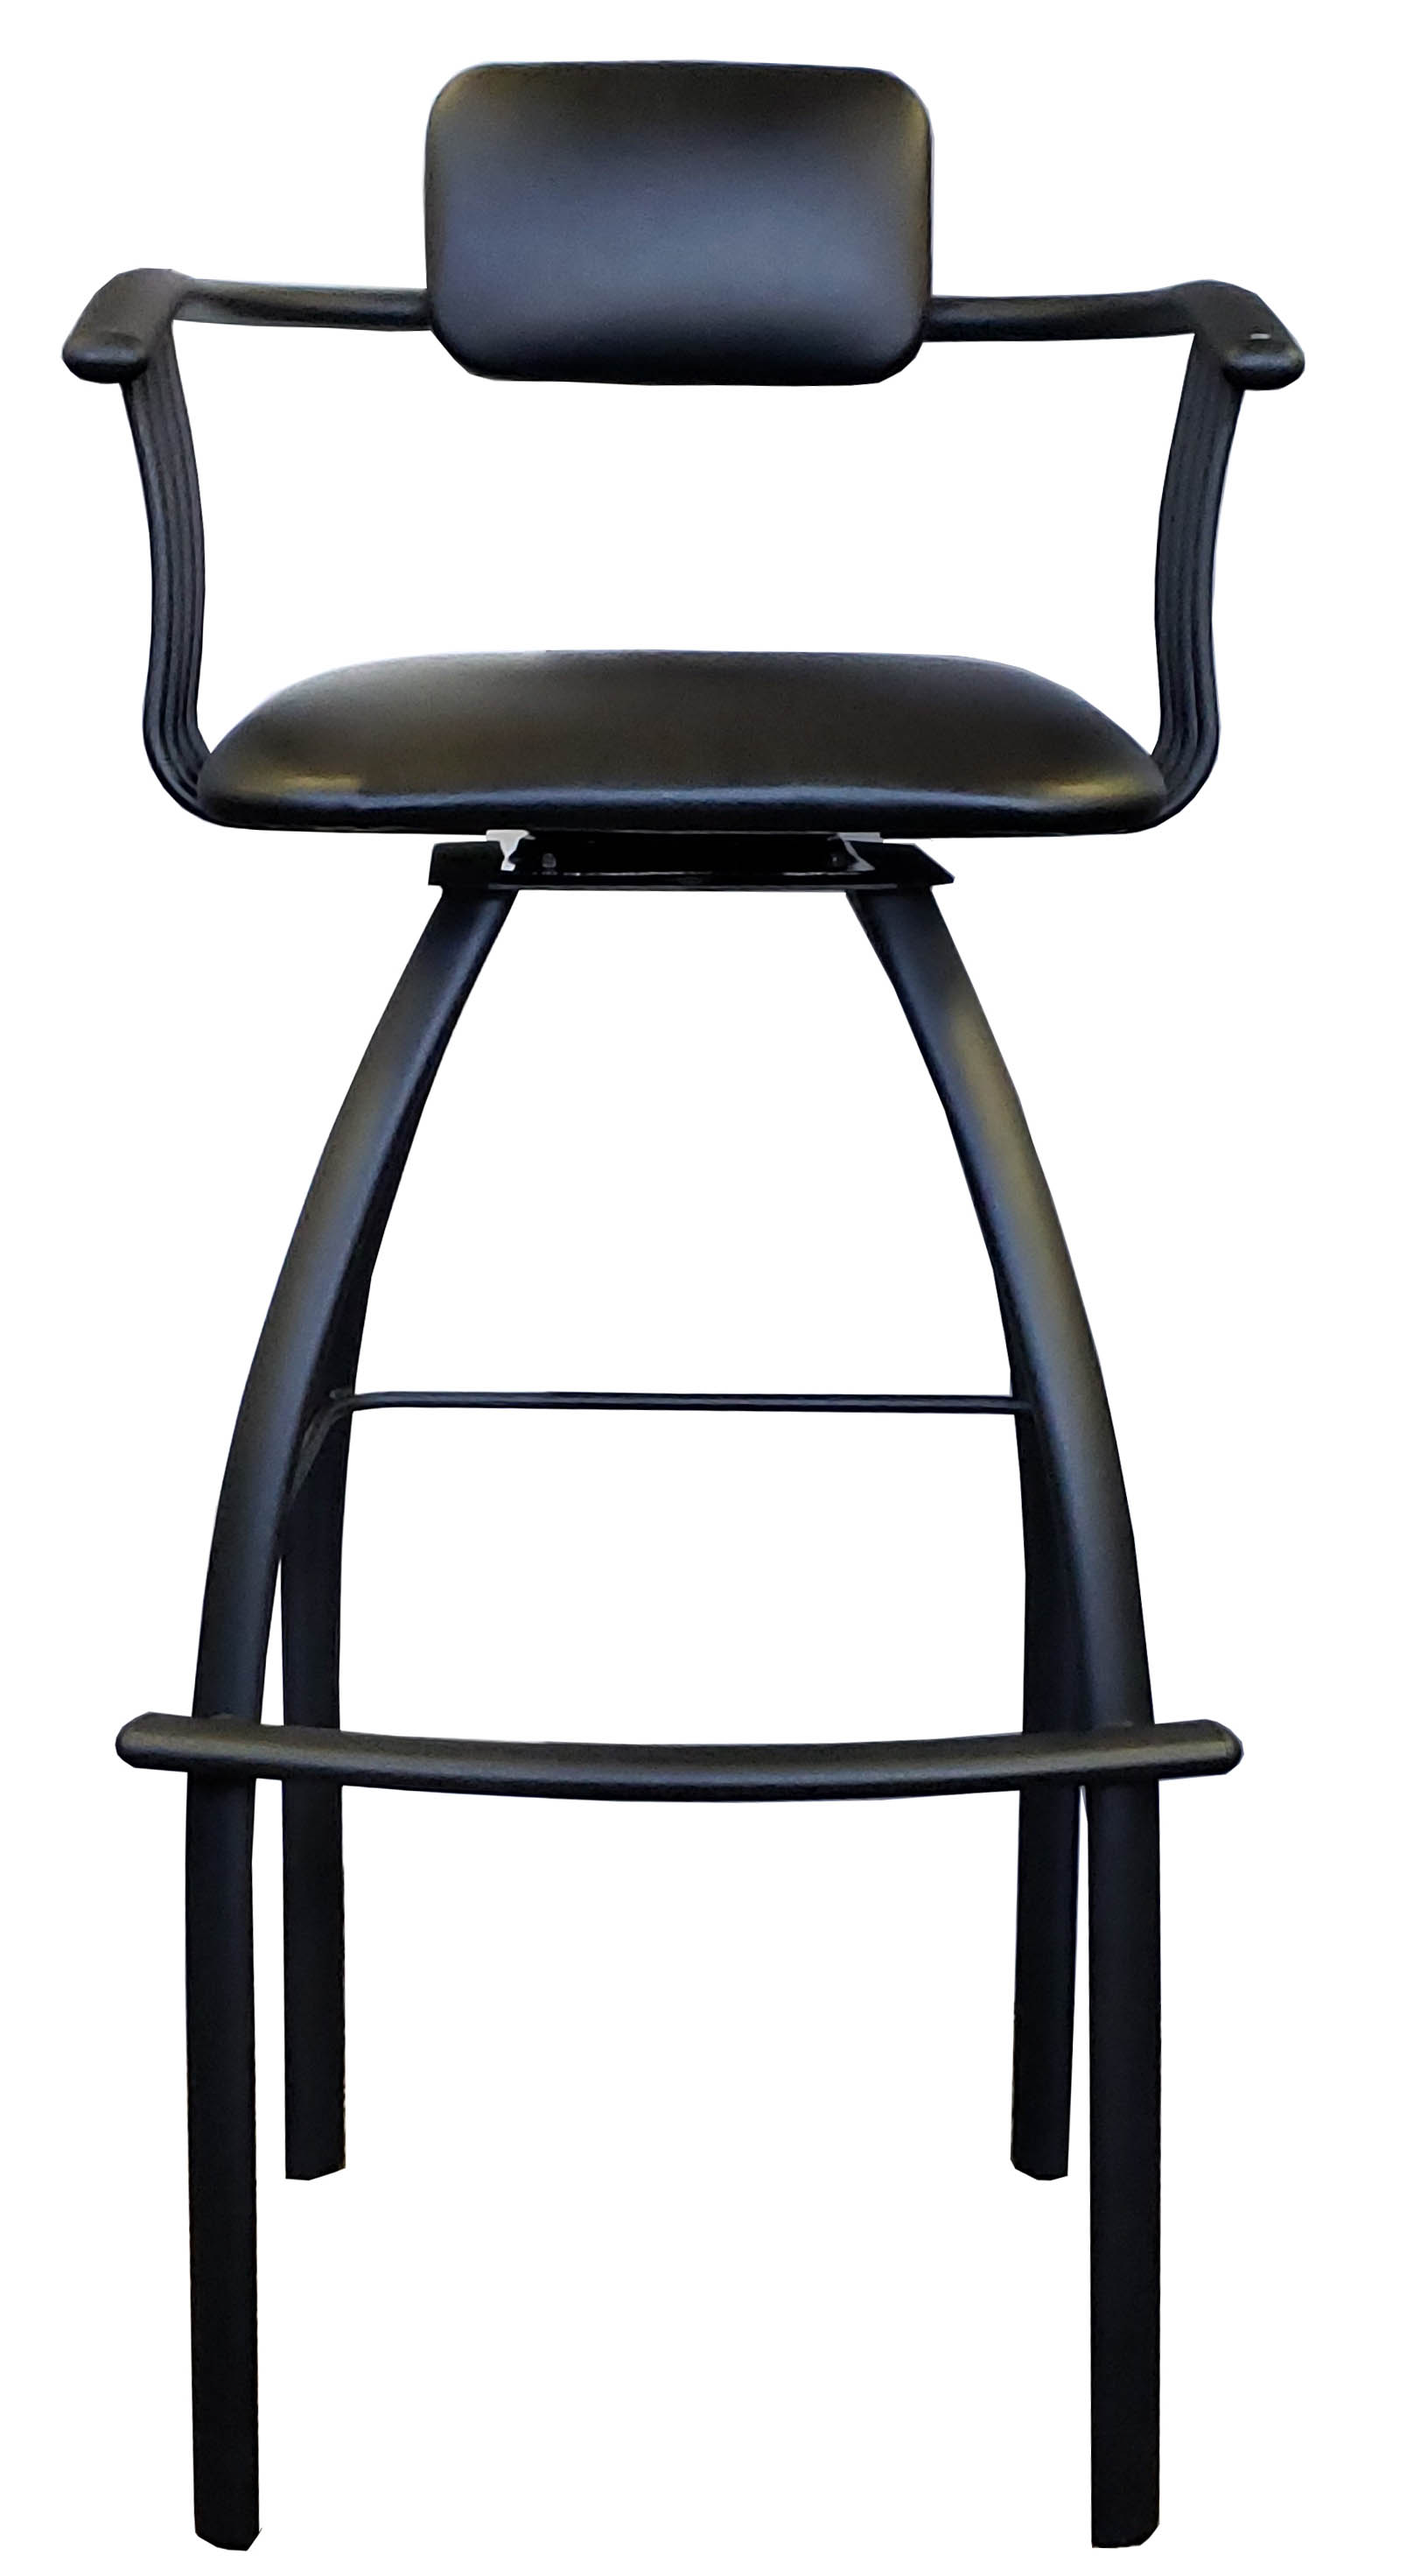 Fine On Sale Extra Tall Swivel Bar Stools In Black 34 Seat Height Ibusinesslaw Wood Chair Design Ideas Ibusinesslaworg